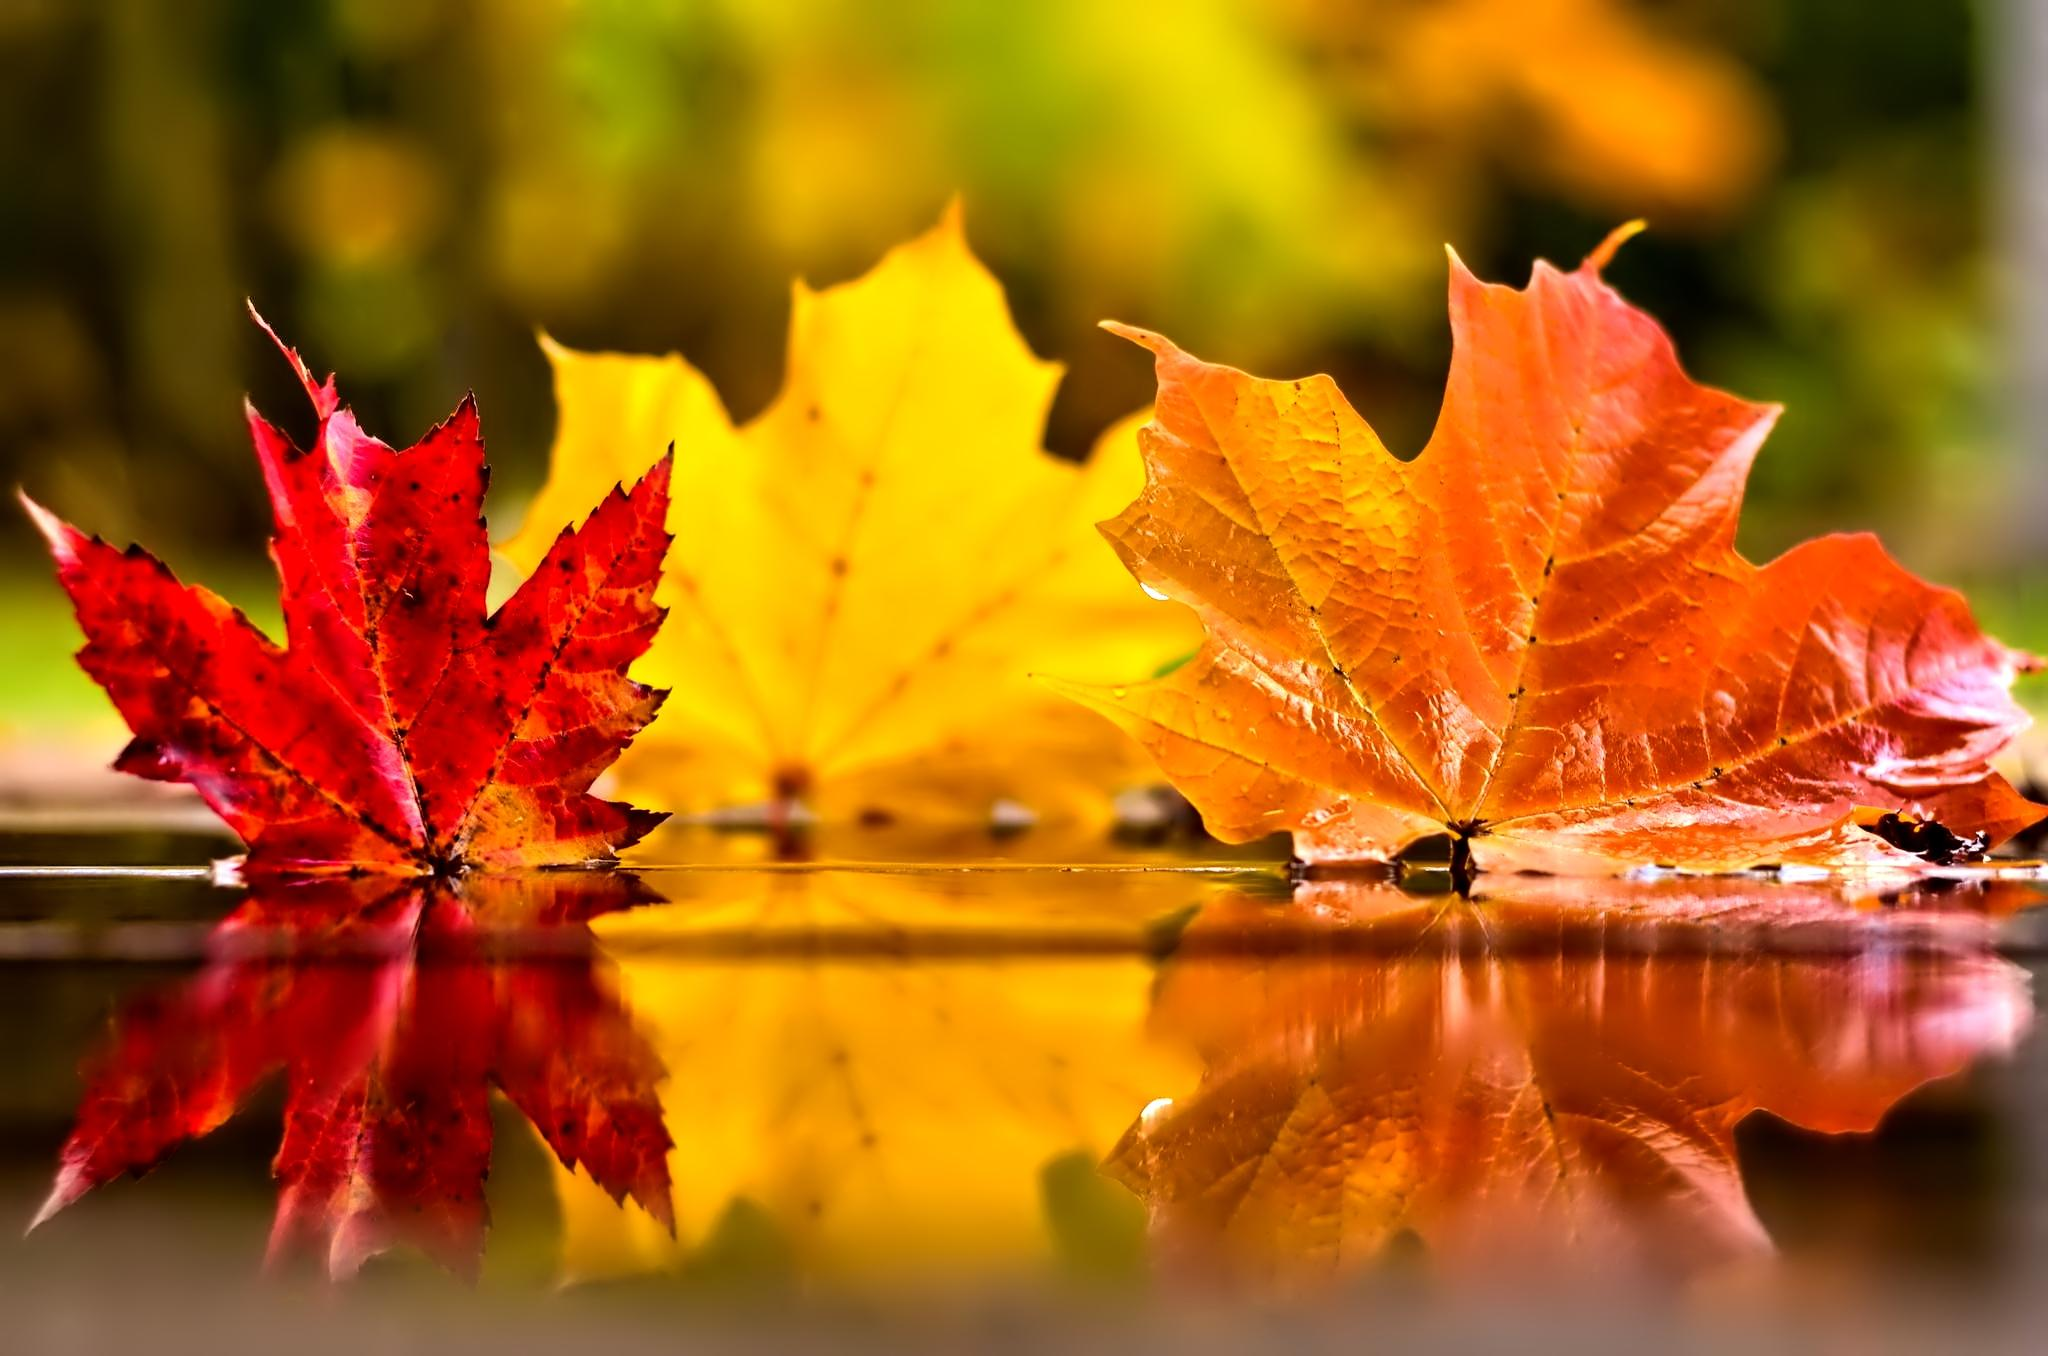 Autumn Falling Leaves Wallpapers November Wallpapers Top Free November Backgrounds